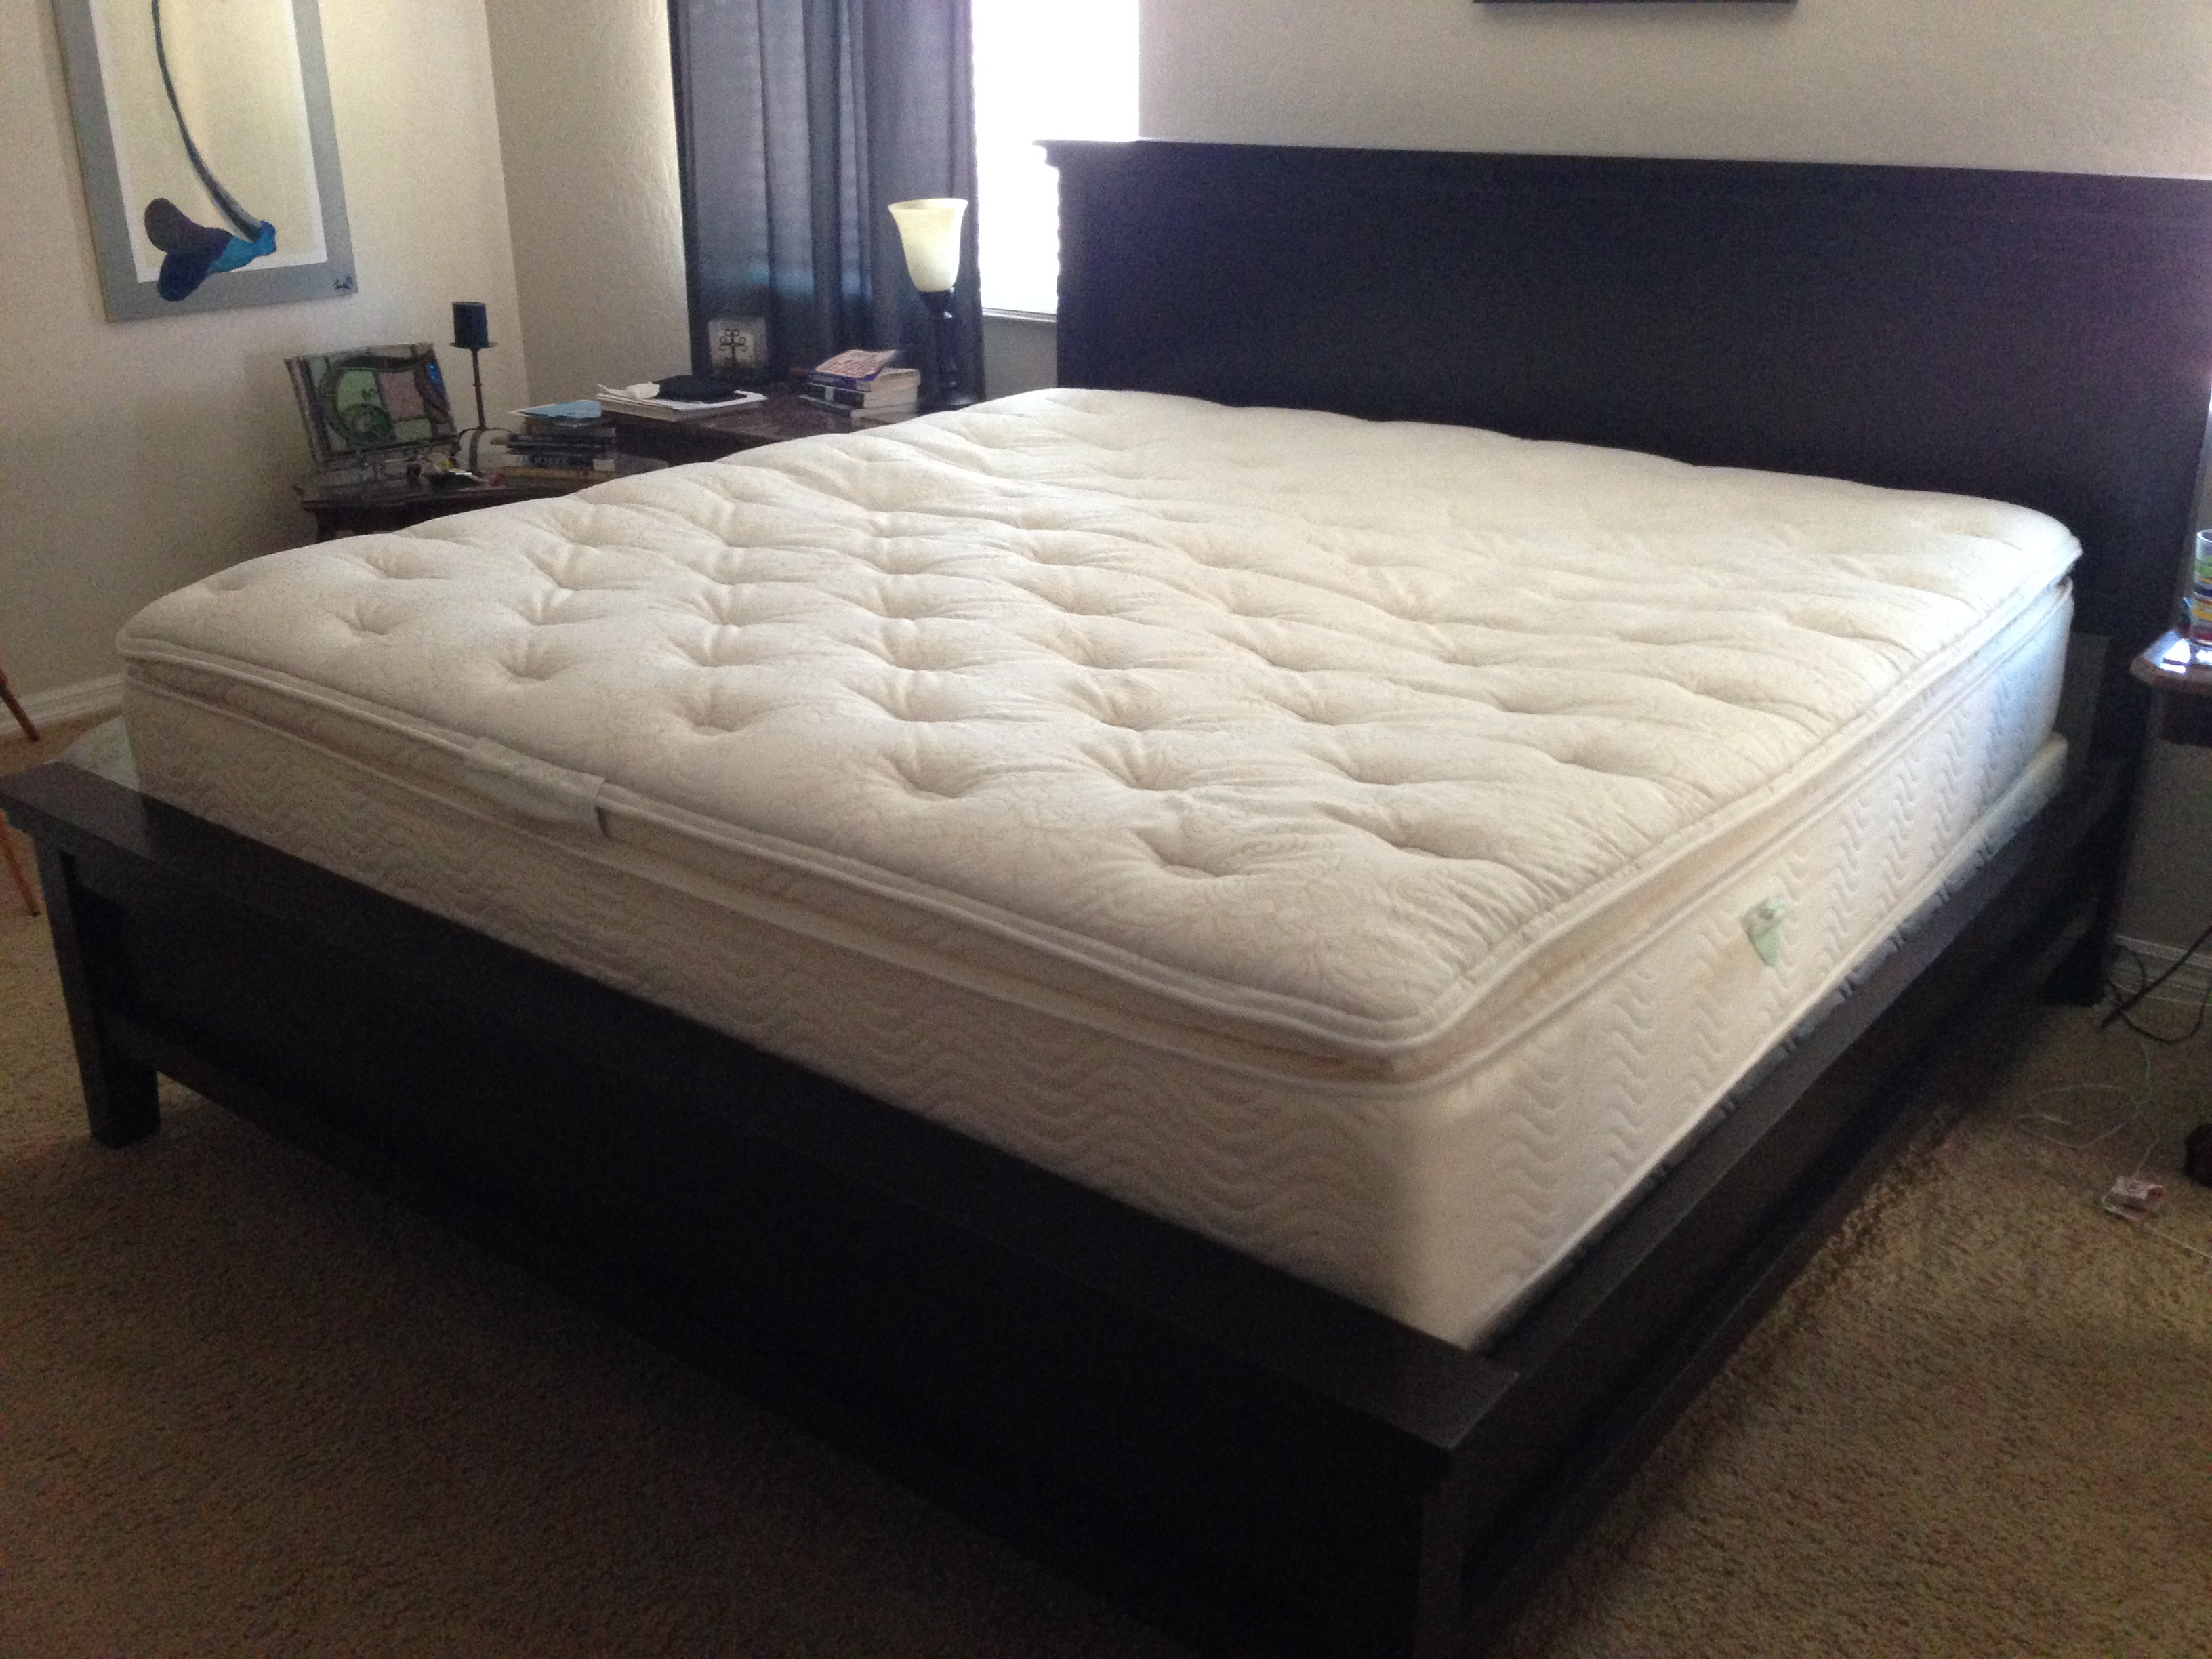 sleeps sit king mattress basement best size jeffsbakery tempurpedic n prices